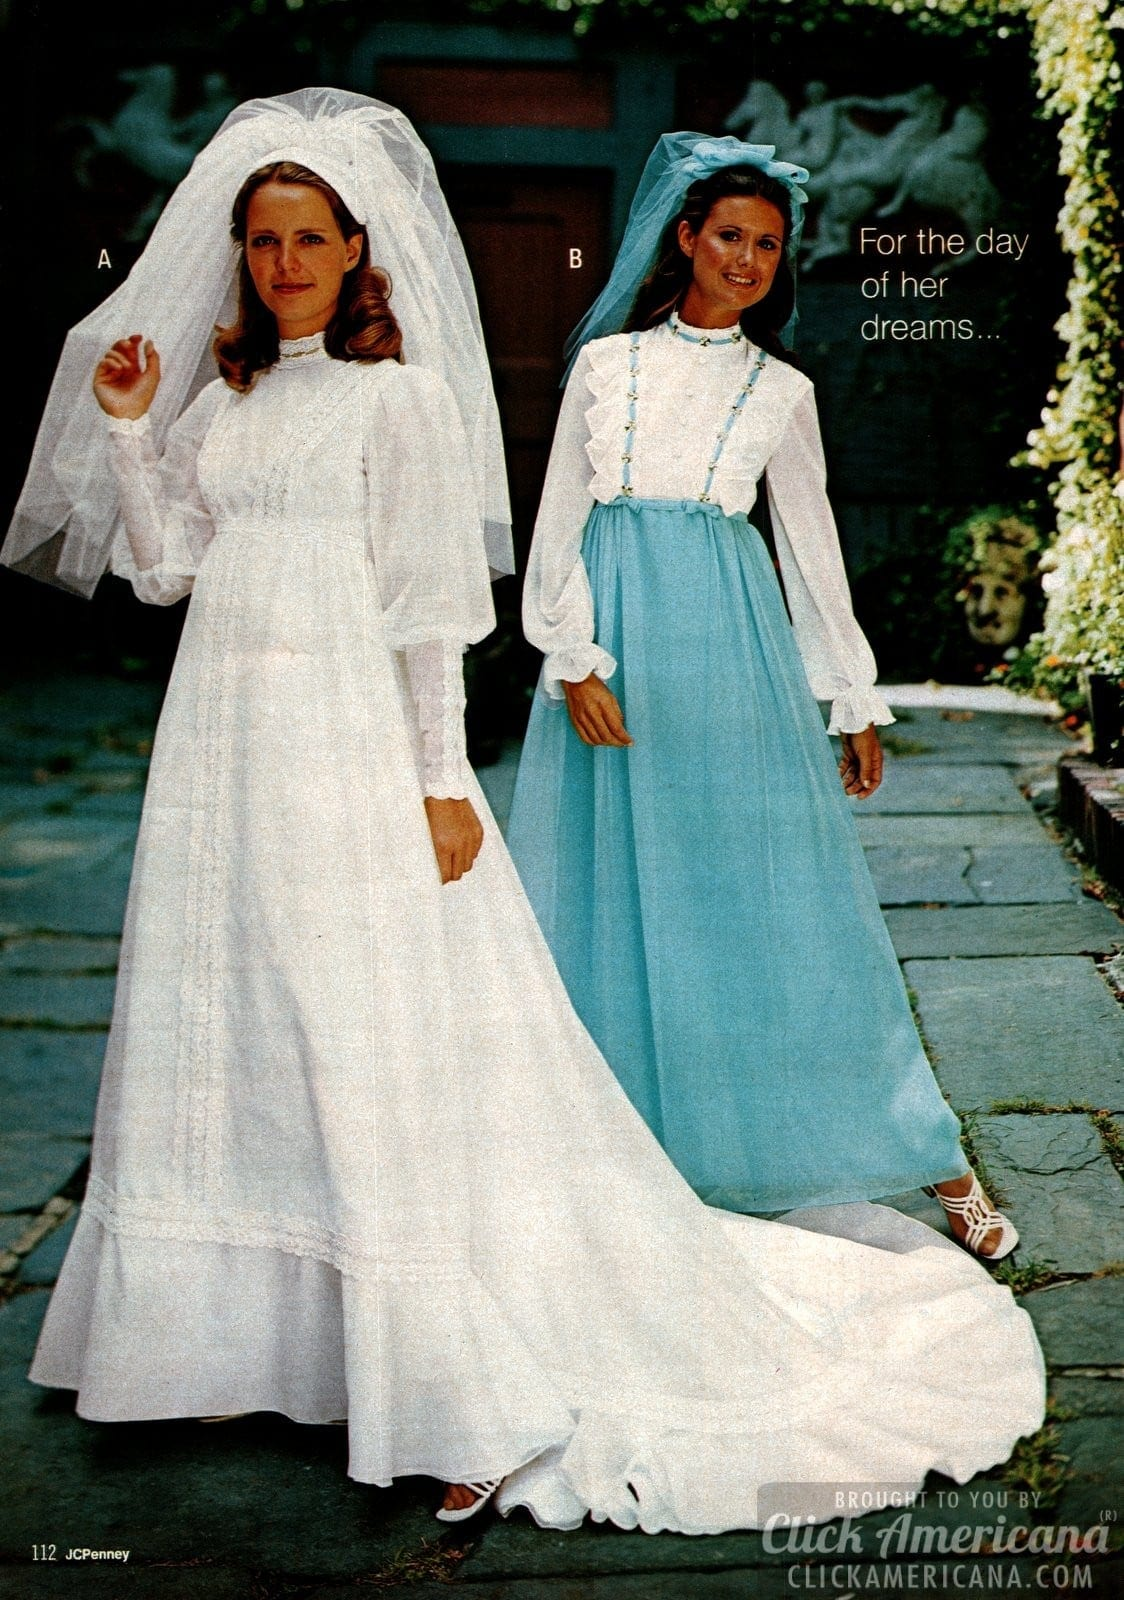 Vintage '70s wedding dresses - white with veil and lace